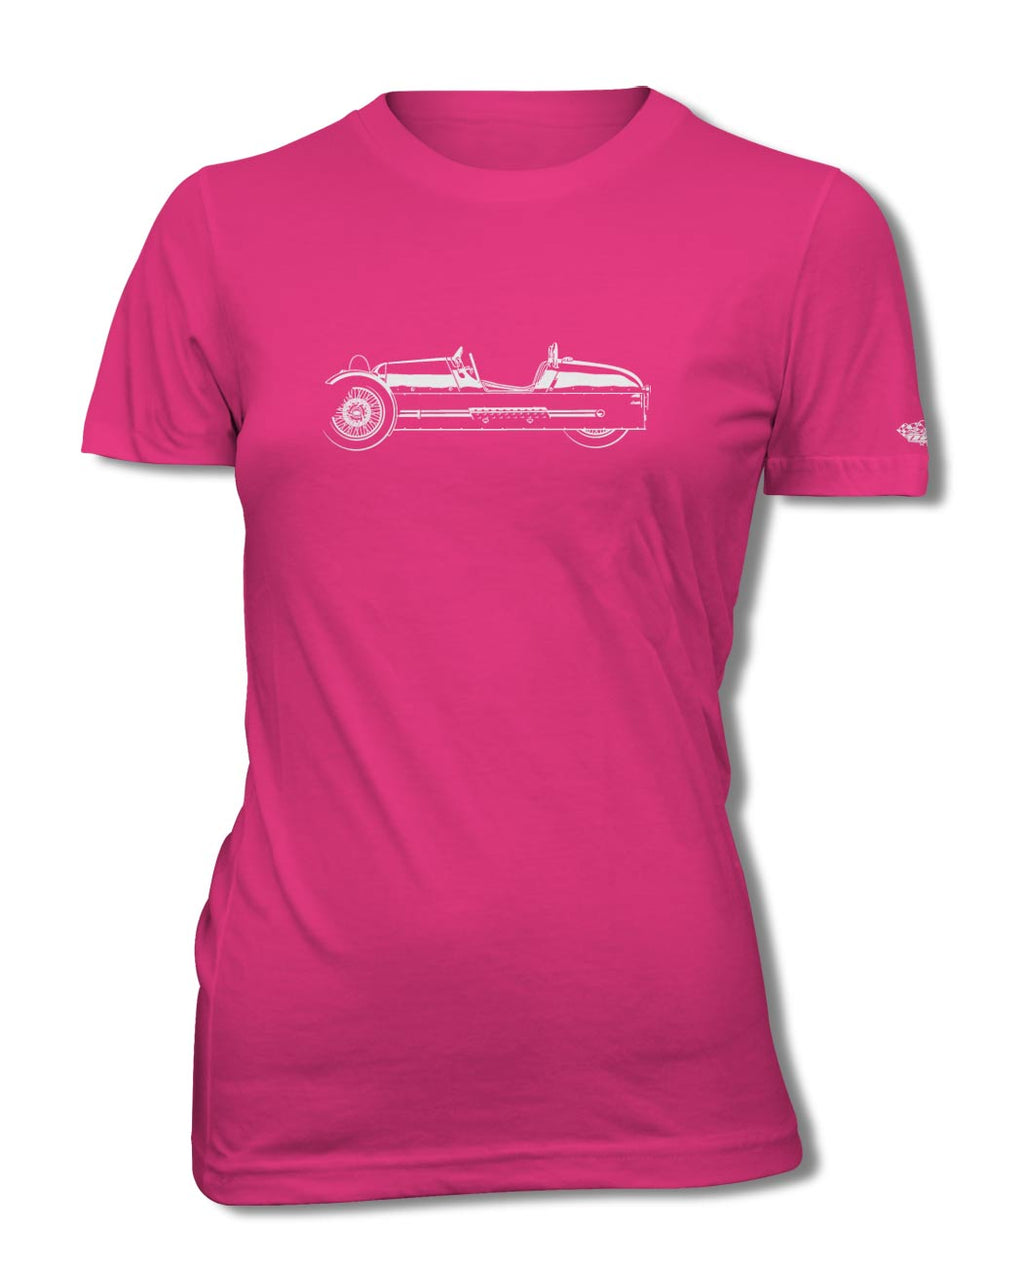 Morgan Three-Wheeler Aero Super Sport T-Shirt - Women - Side View